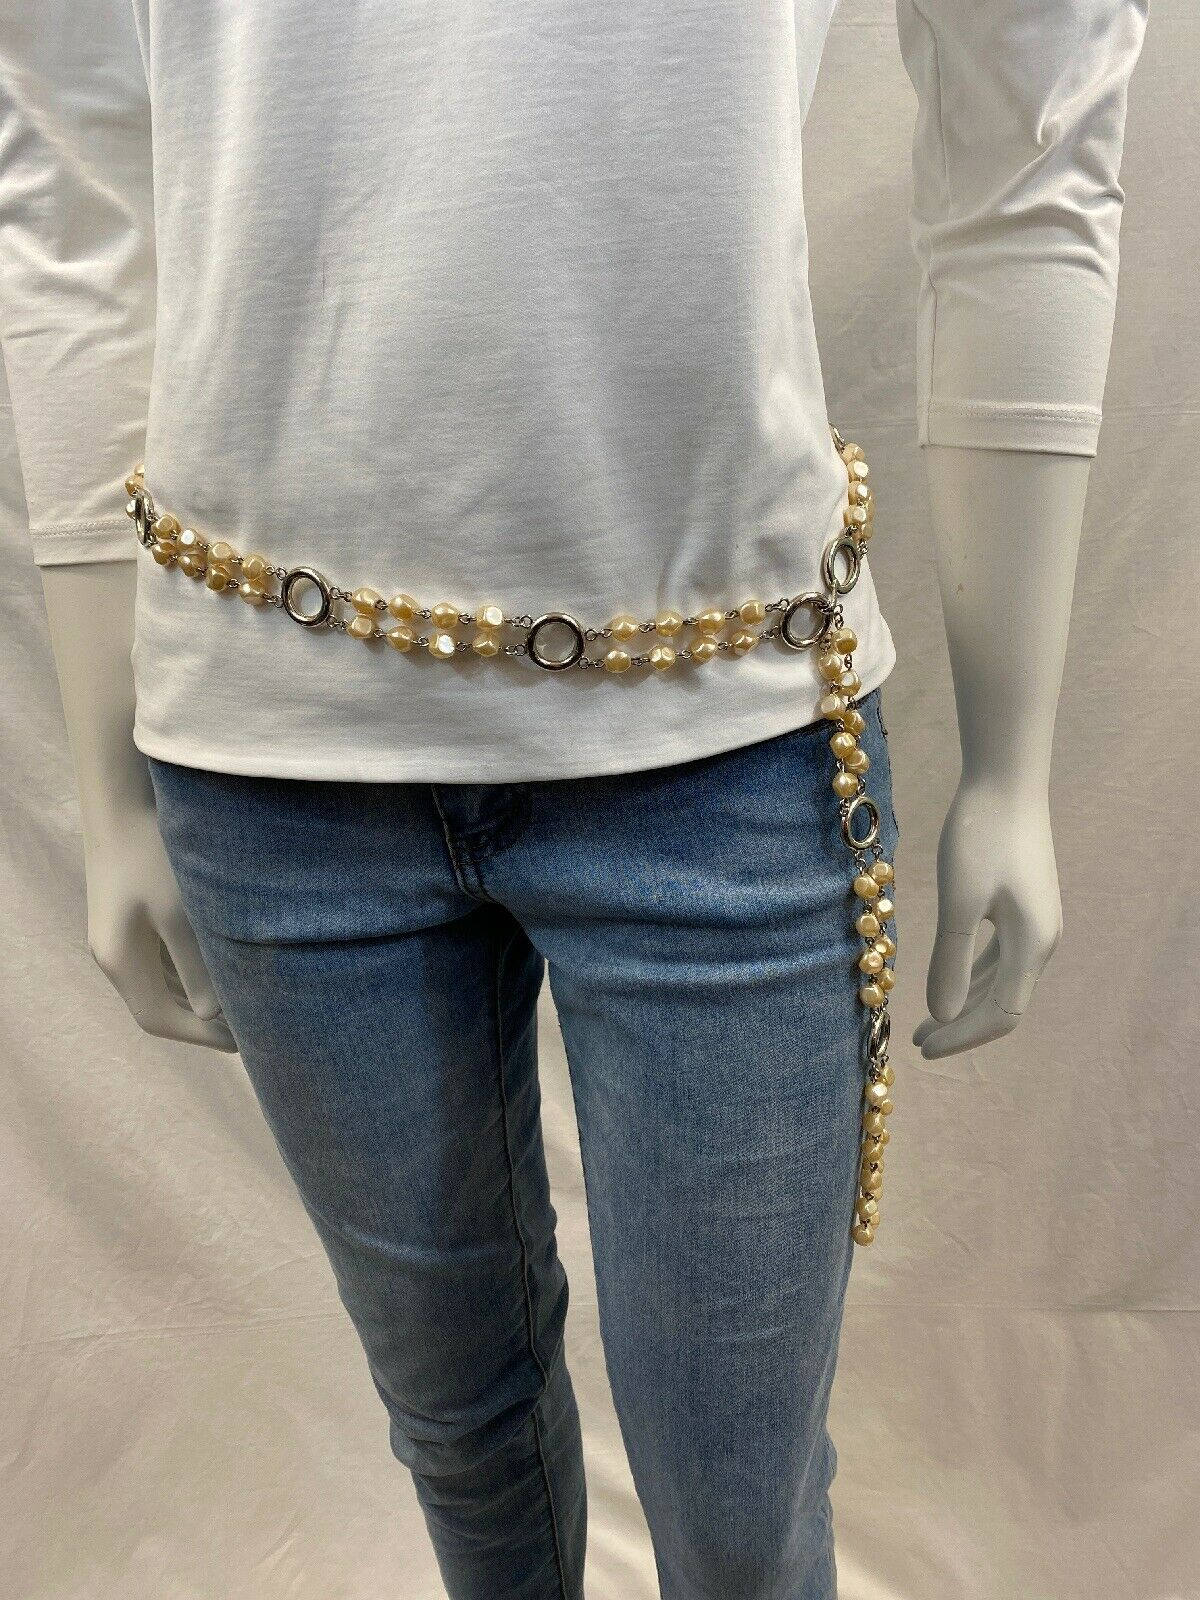 BELT Women's Circle Silver and Pearls Adjustable